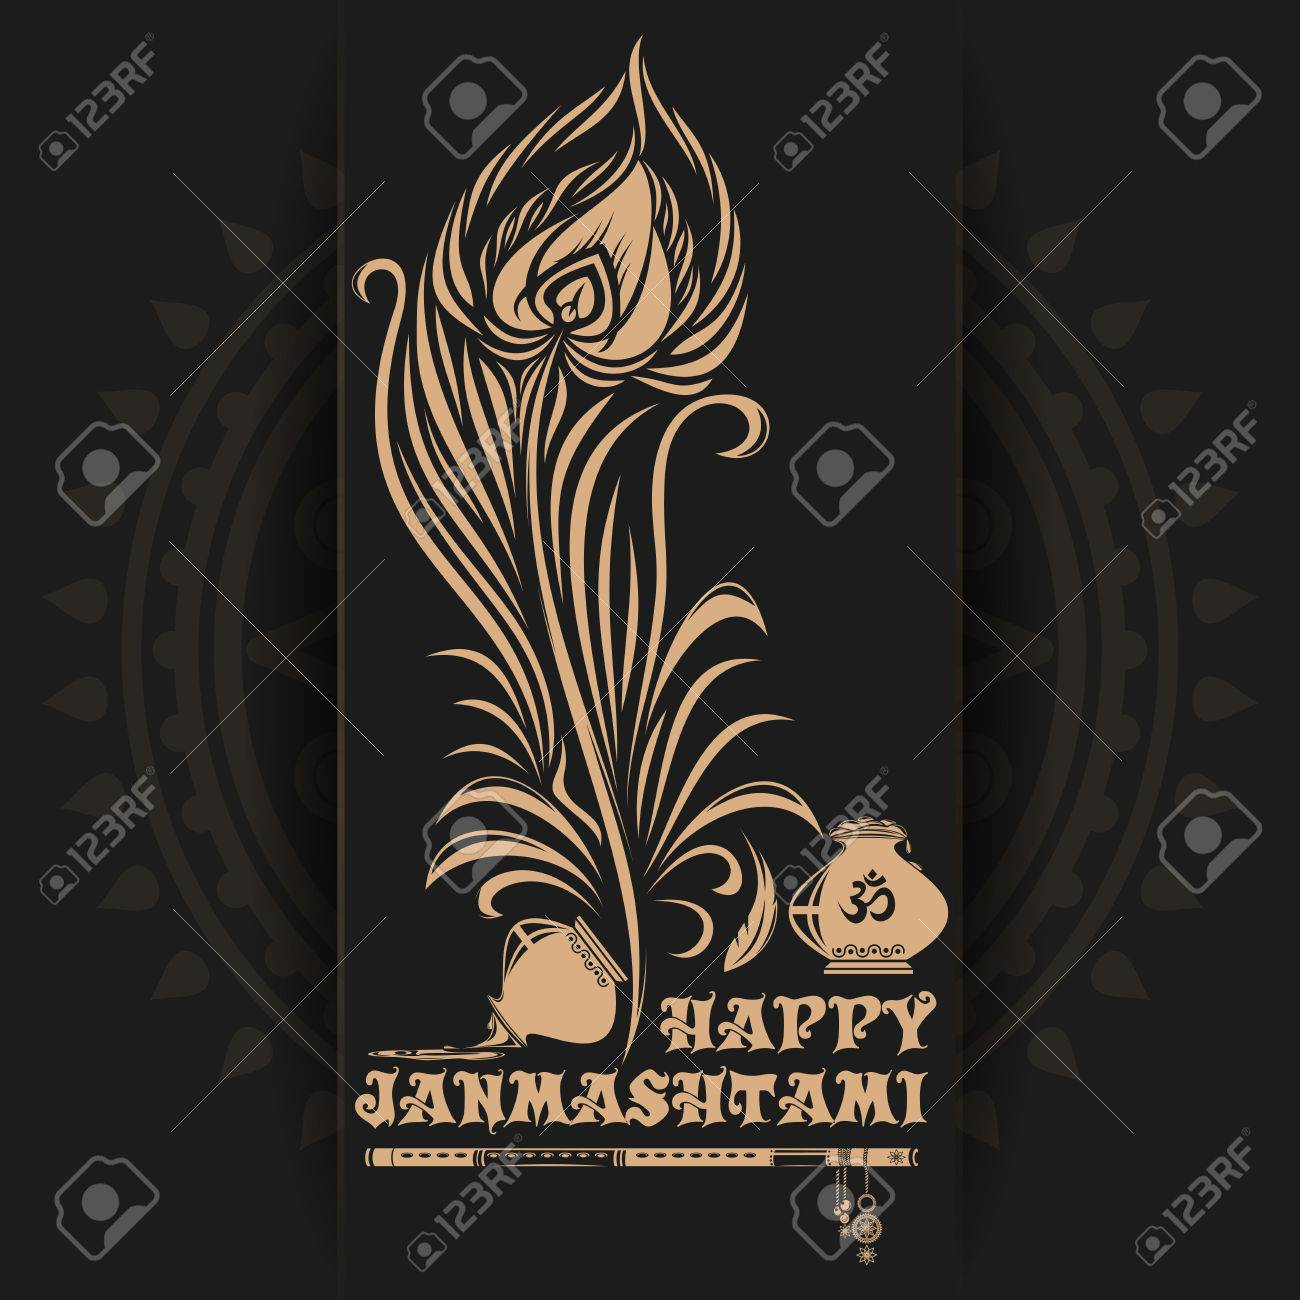 81065852 krishna janmashtami logo design on black background greeting card for celebration of the birth of th